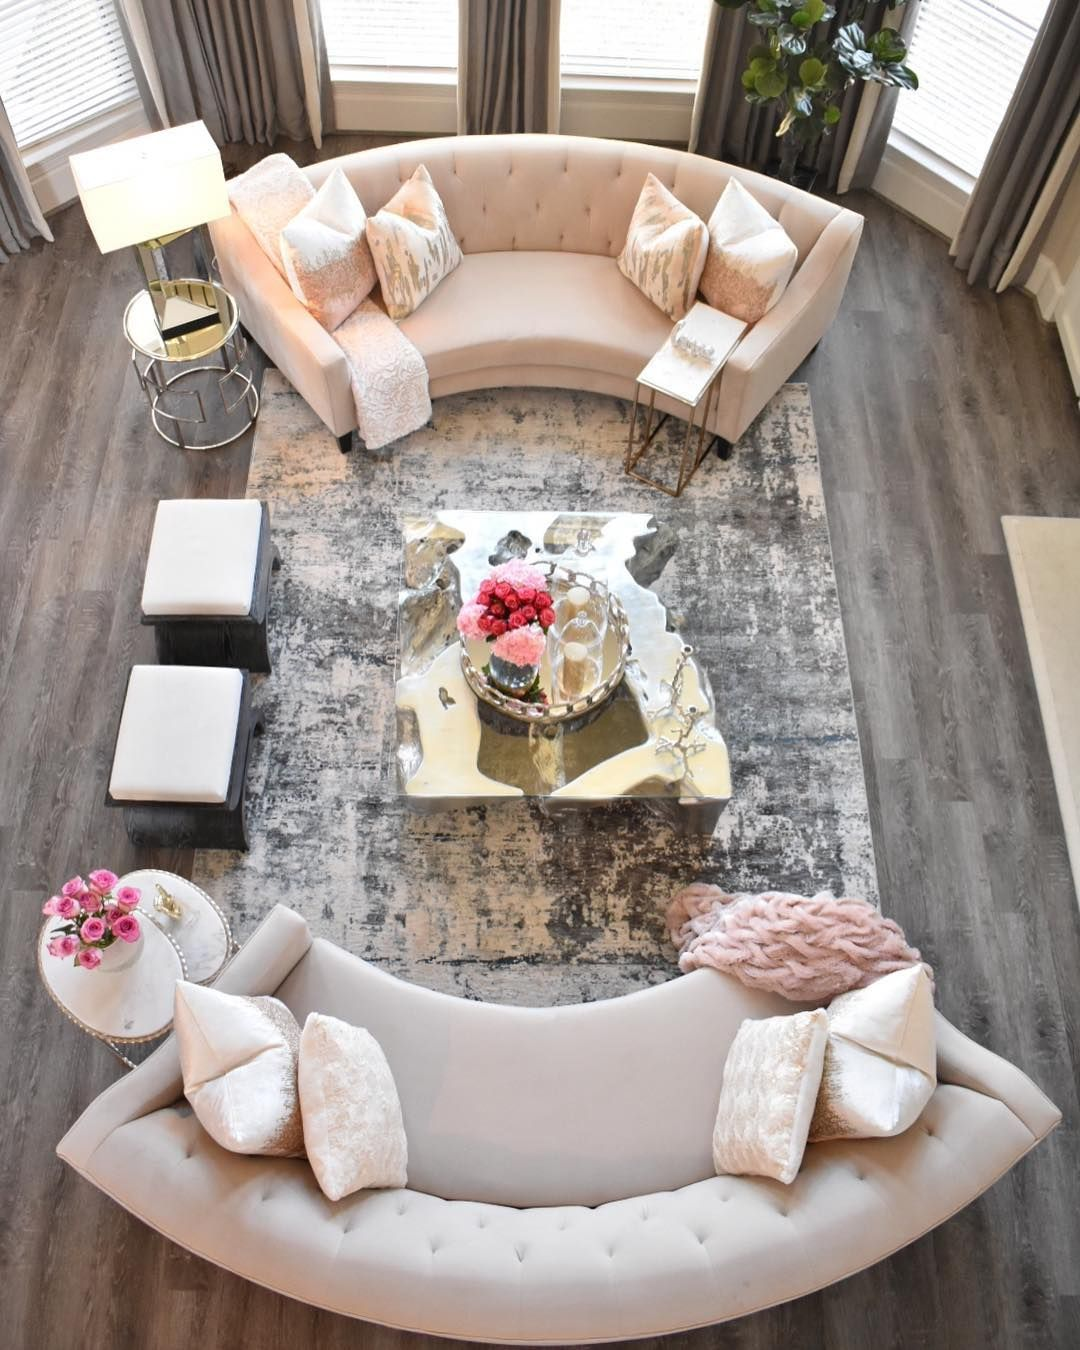 Happy Sunday Sharing This Never Before Seen View To Show You Guys My Beautiful New Rug From Boutiquerugs Living Room Designs Home Decor Inspiration Home View home decor for living room table